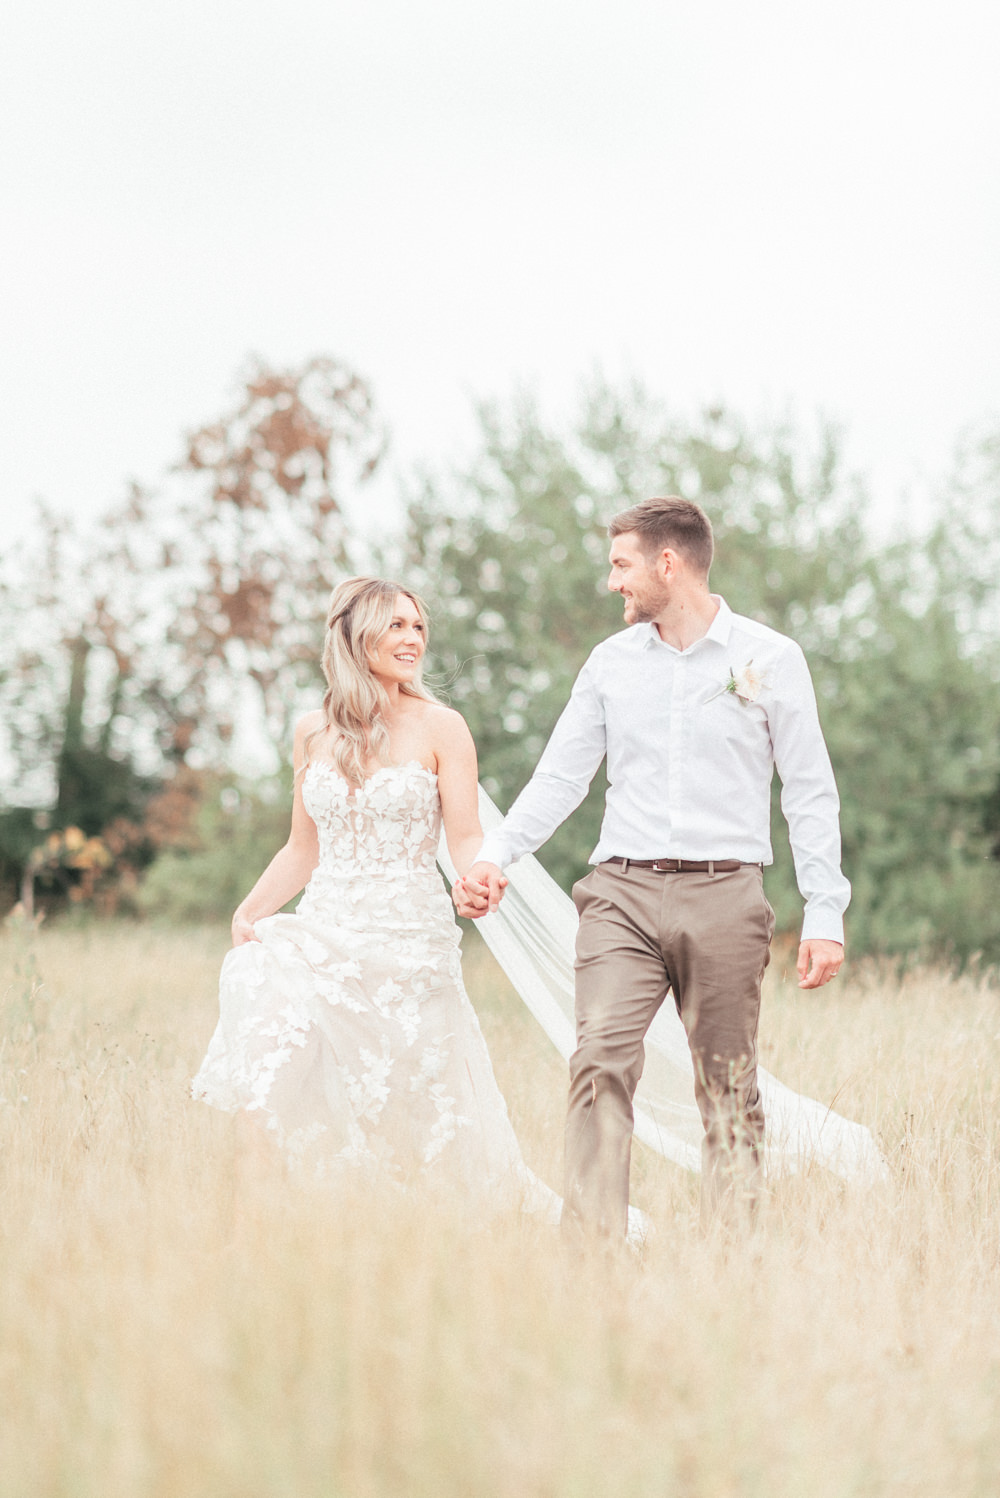 Groom Suit Brown Trousers Shirt UK Destination Wedding Hannah McClune Photography